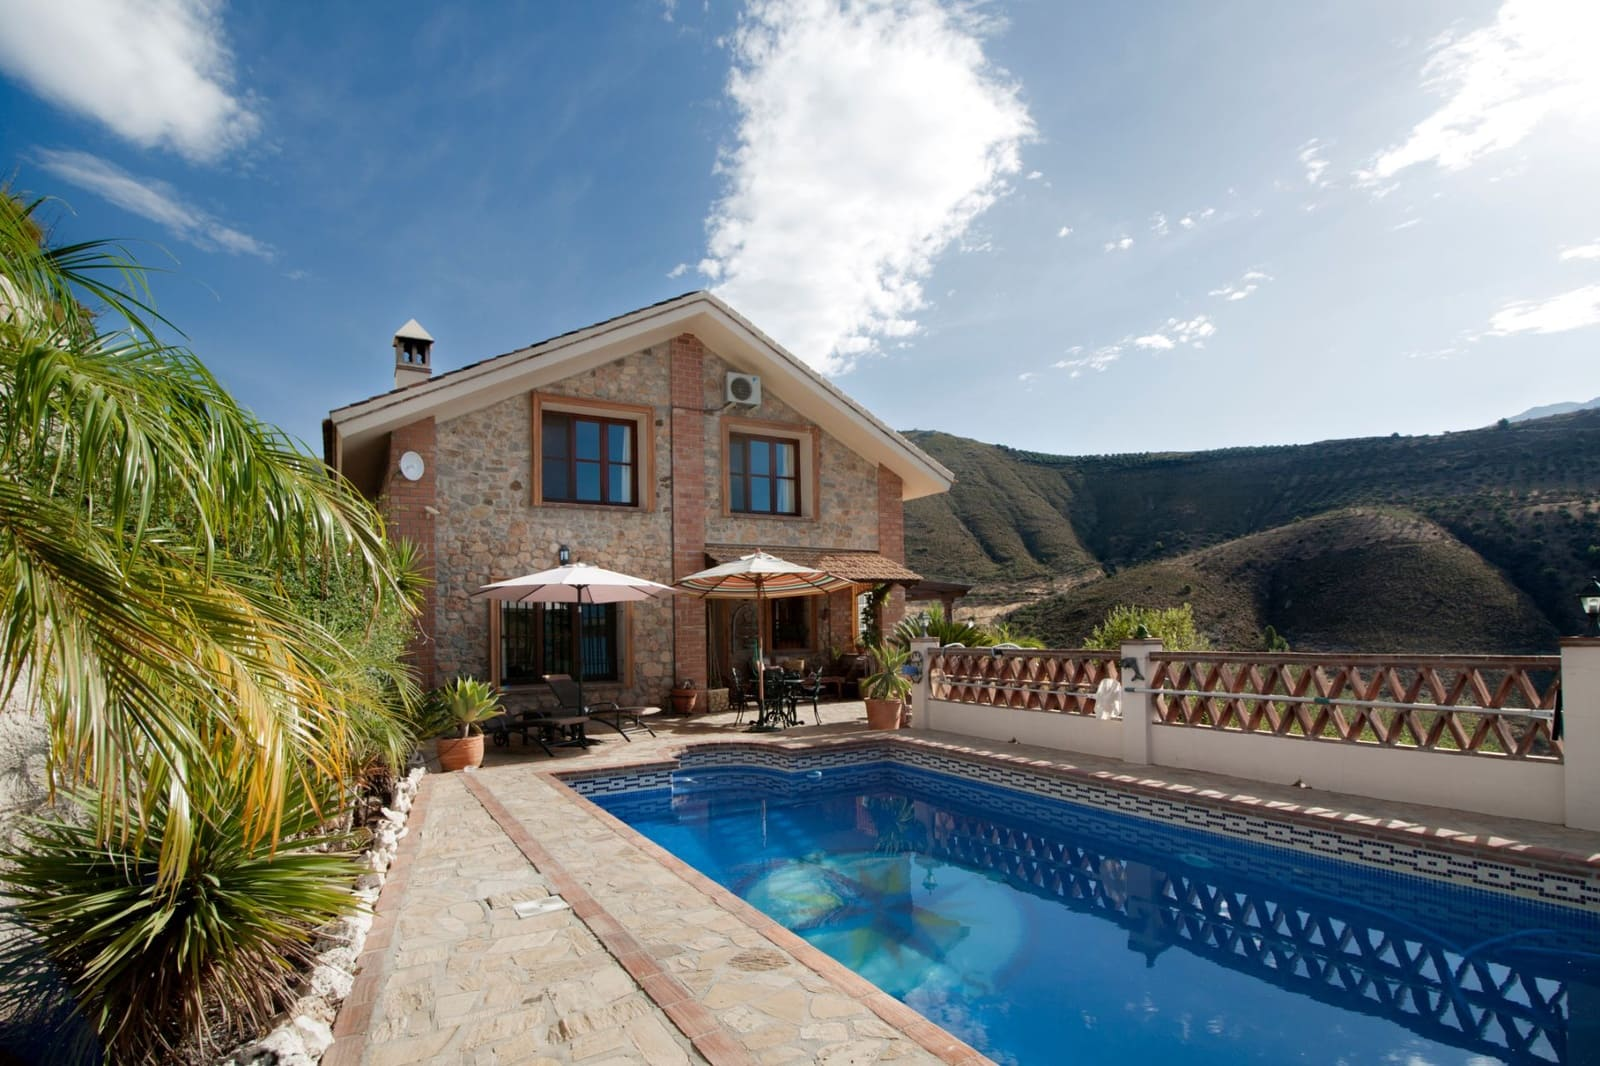 4 bedroom Finca/Country House for sale in Alcaucin with pool - € 394,900 (Ref: 4757198)